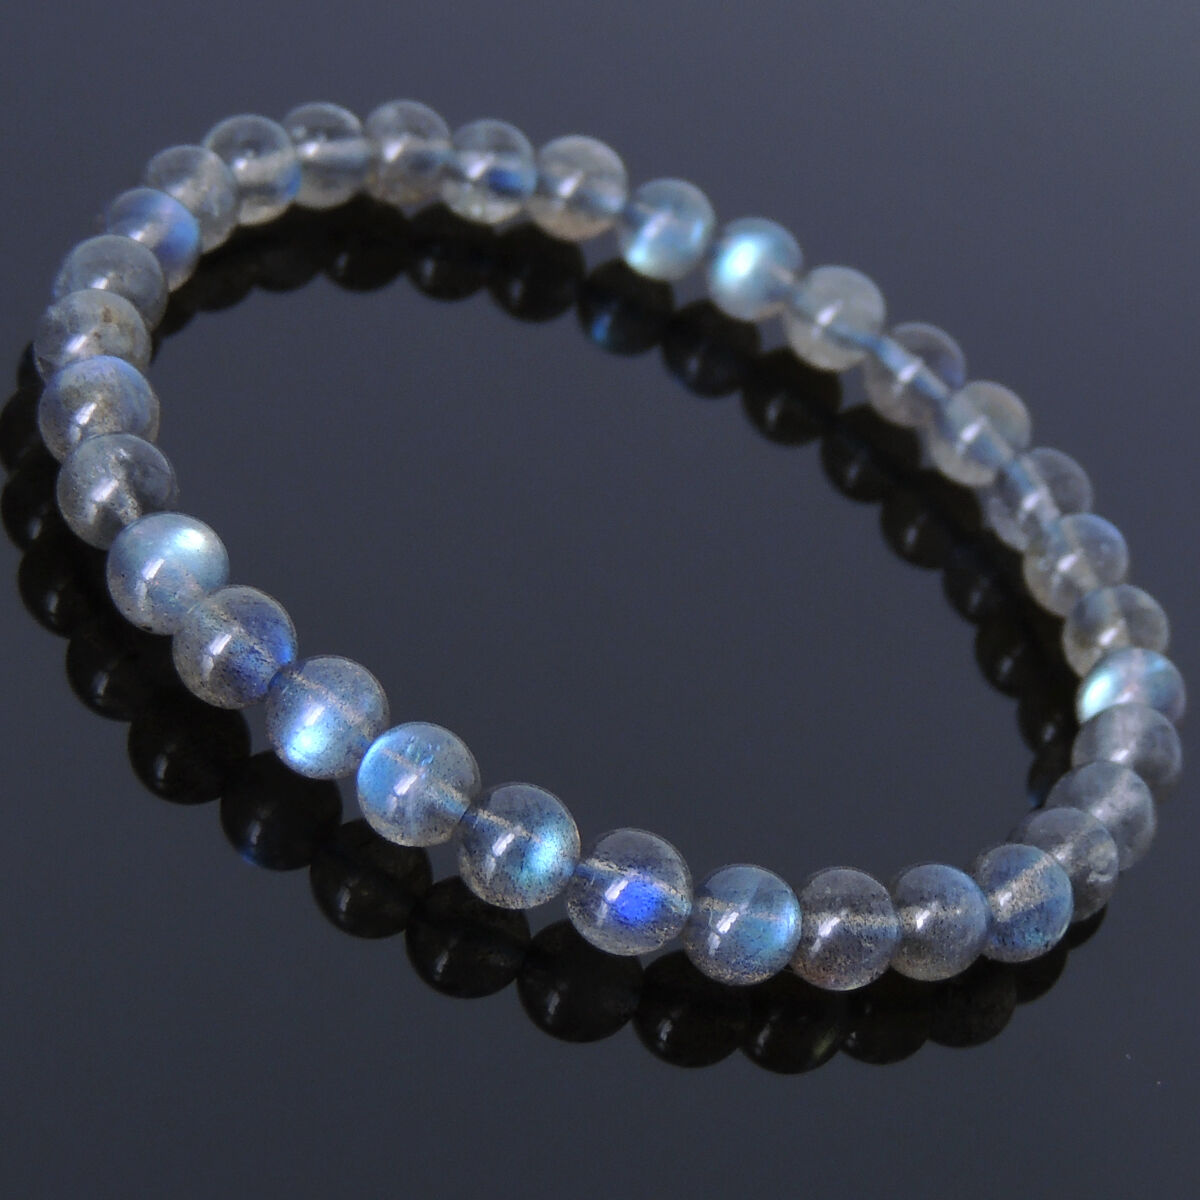 Men's Women Labradorite Bracelet Rare Strong Flash Gemstone DIY-KAREN 245E